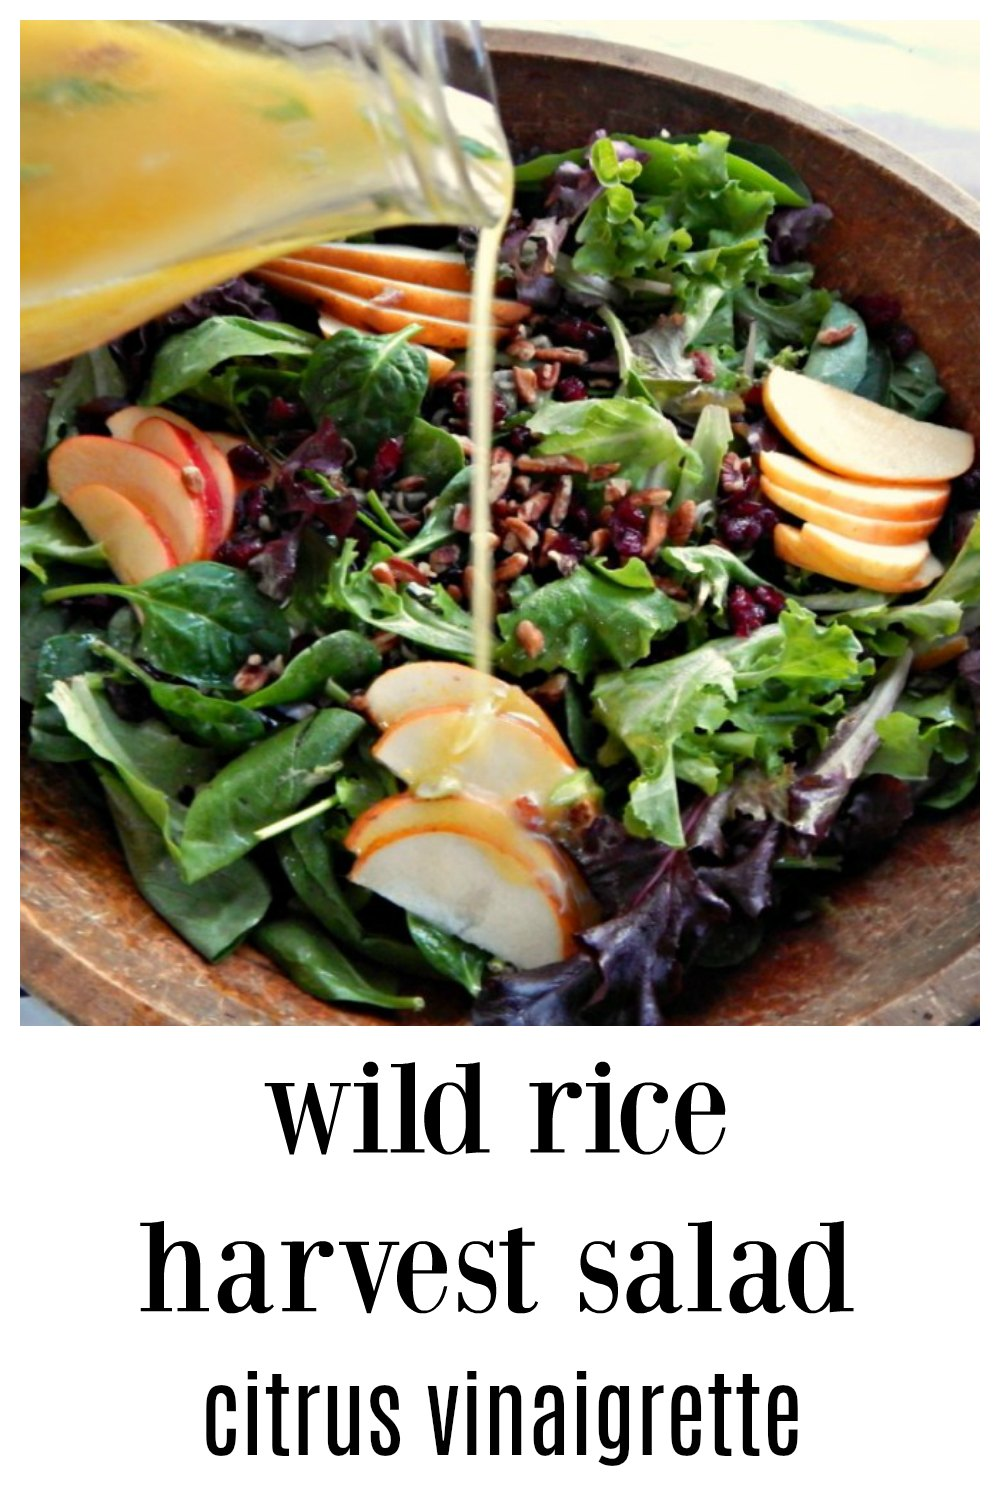 This Harvest Wild Rice Salad Citrus Dressing is everything! Serve this at a holiday or dinner party and it's going to be the star of the show. Loaded with everything good! #WildRiceSalad #HarvestSalad #HolidaySalad #SaladApplesPears